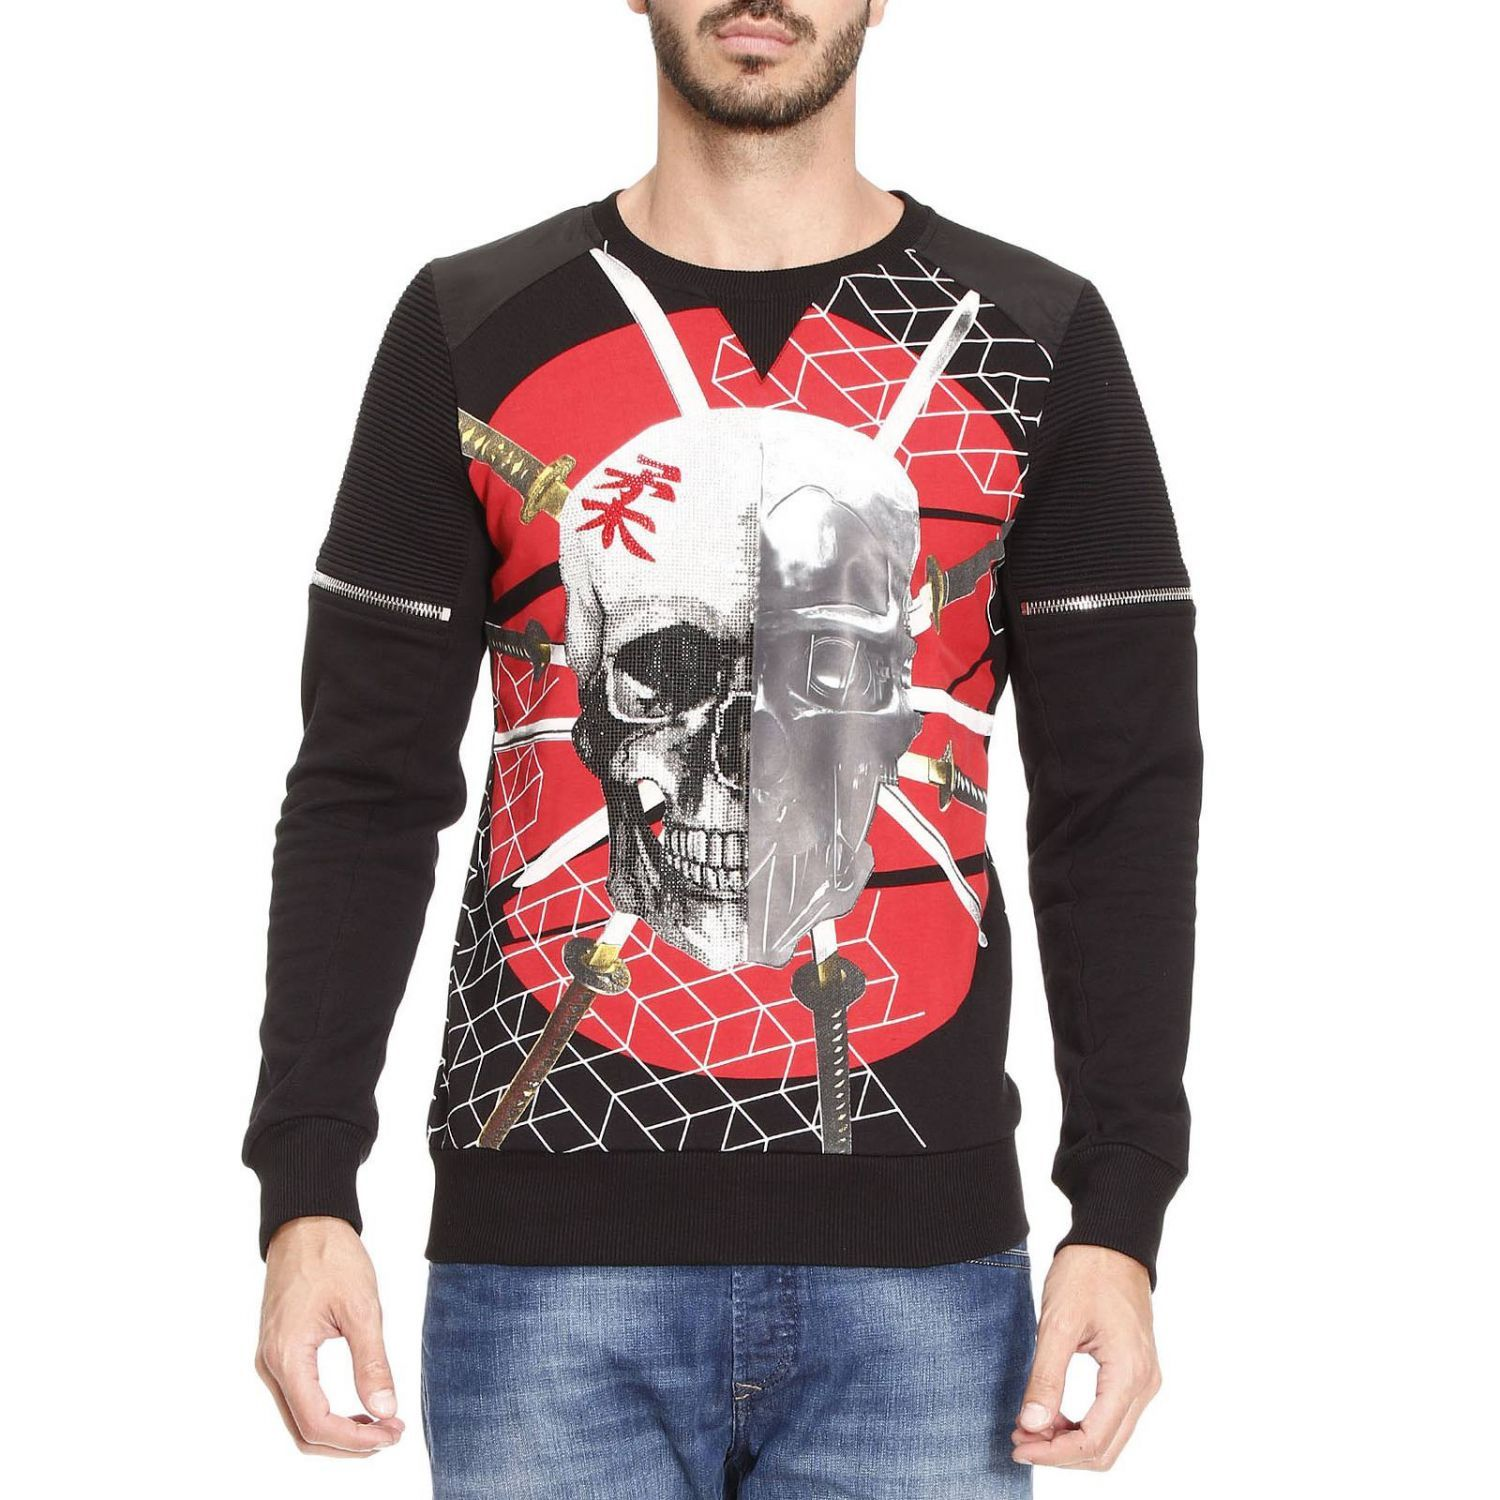 Sweatshirt Sweater Men Philipp Plein